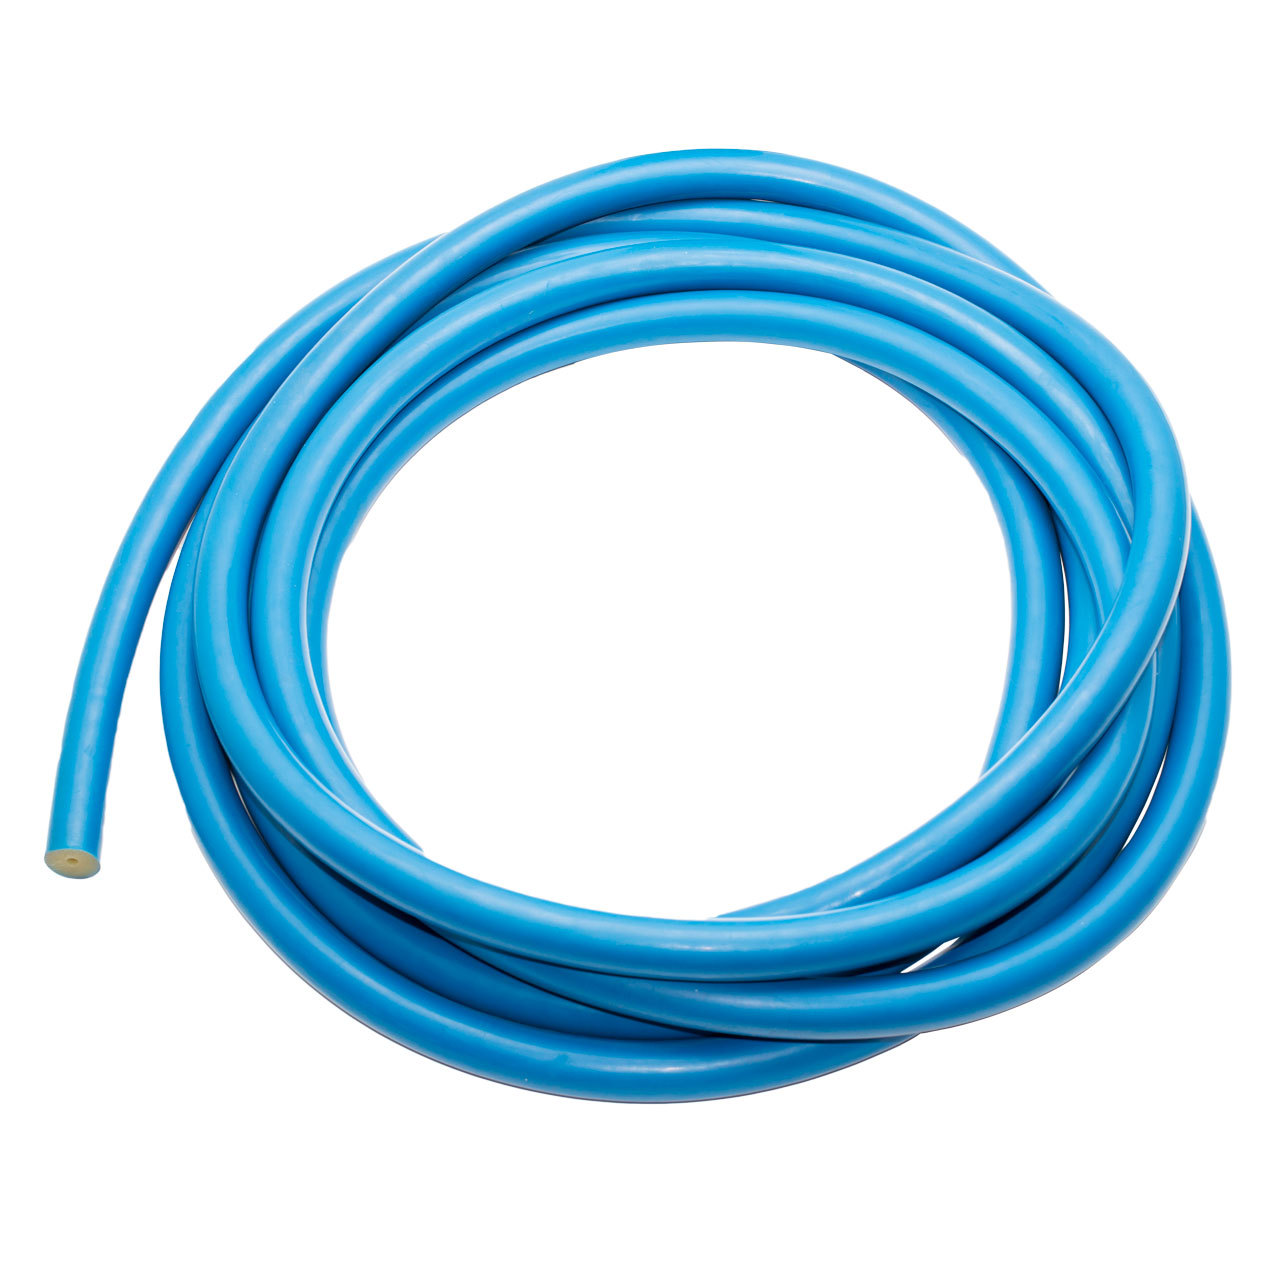 JBL 5/8in Blue-Amber Surgical Tubing